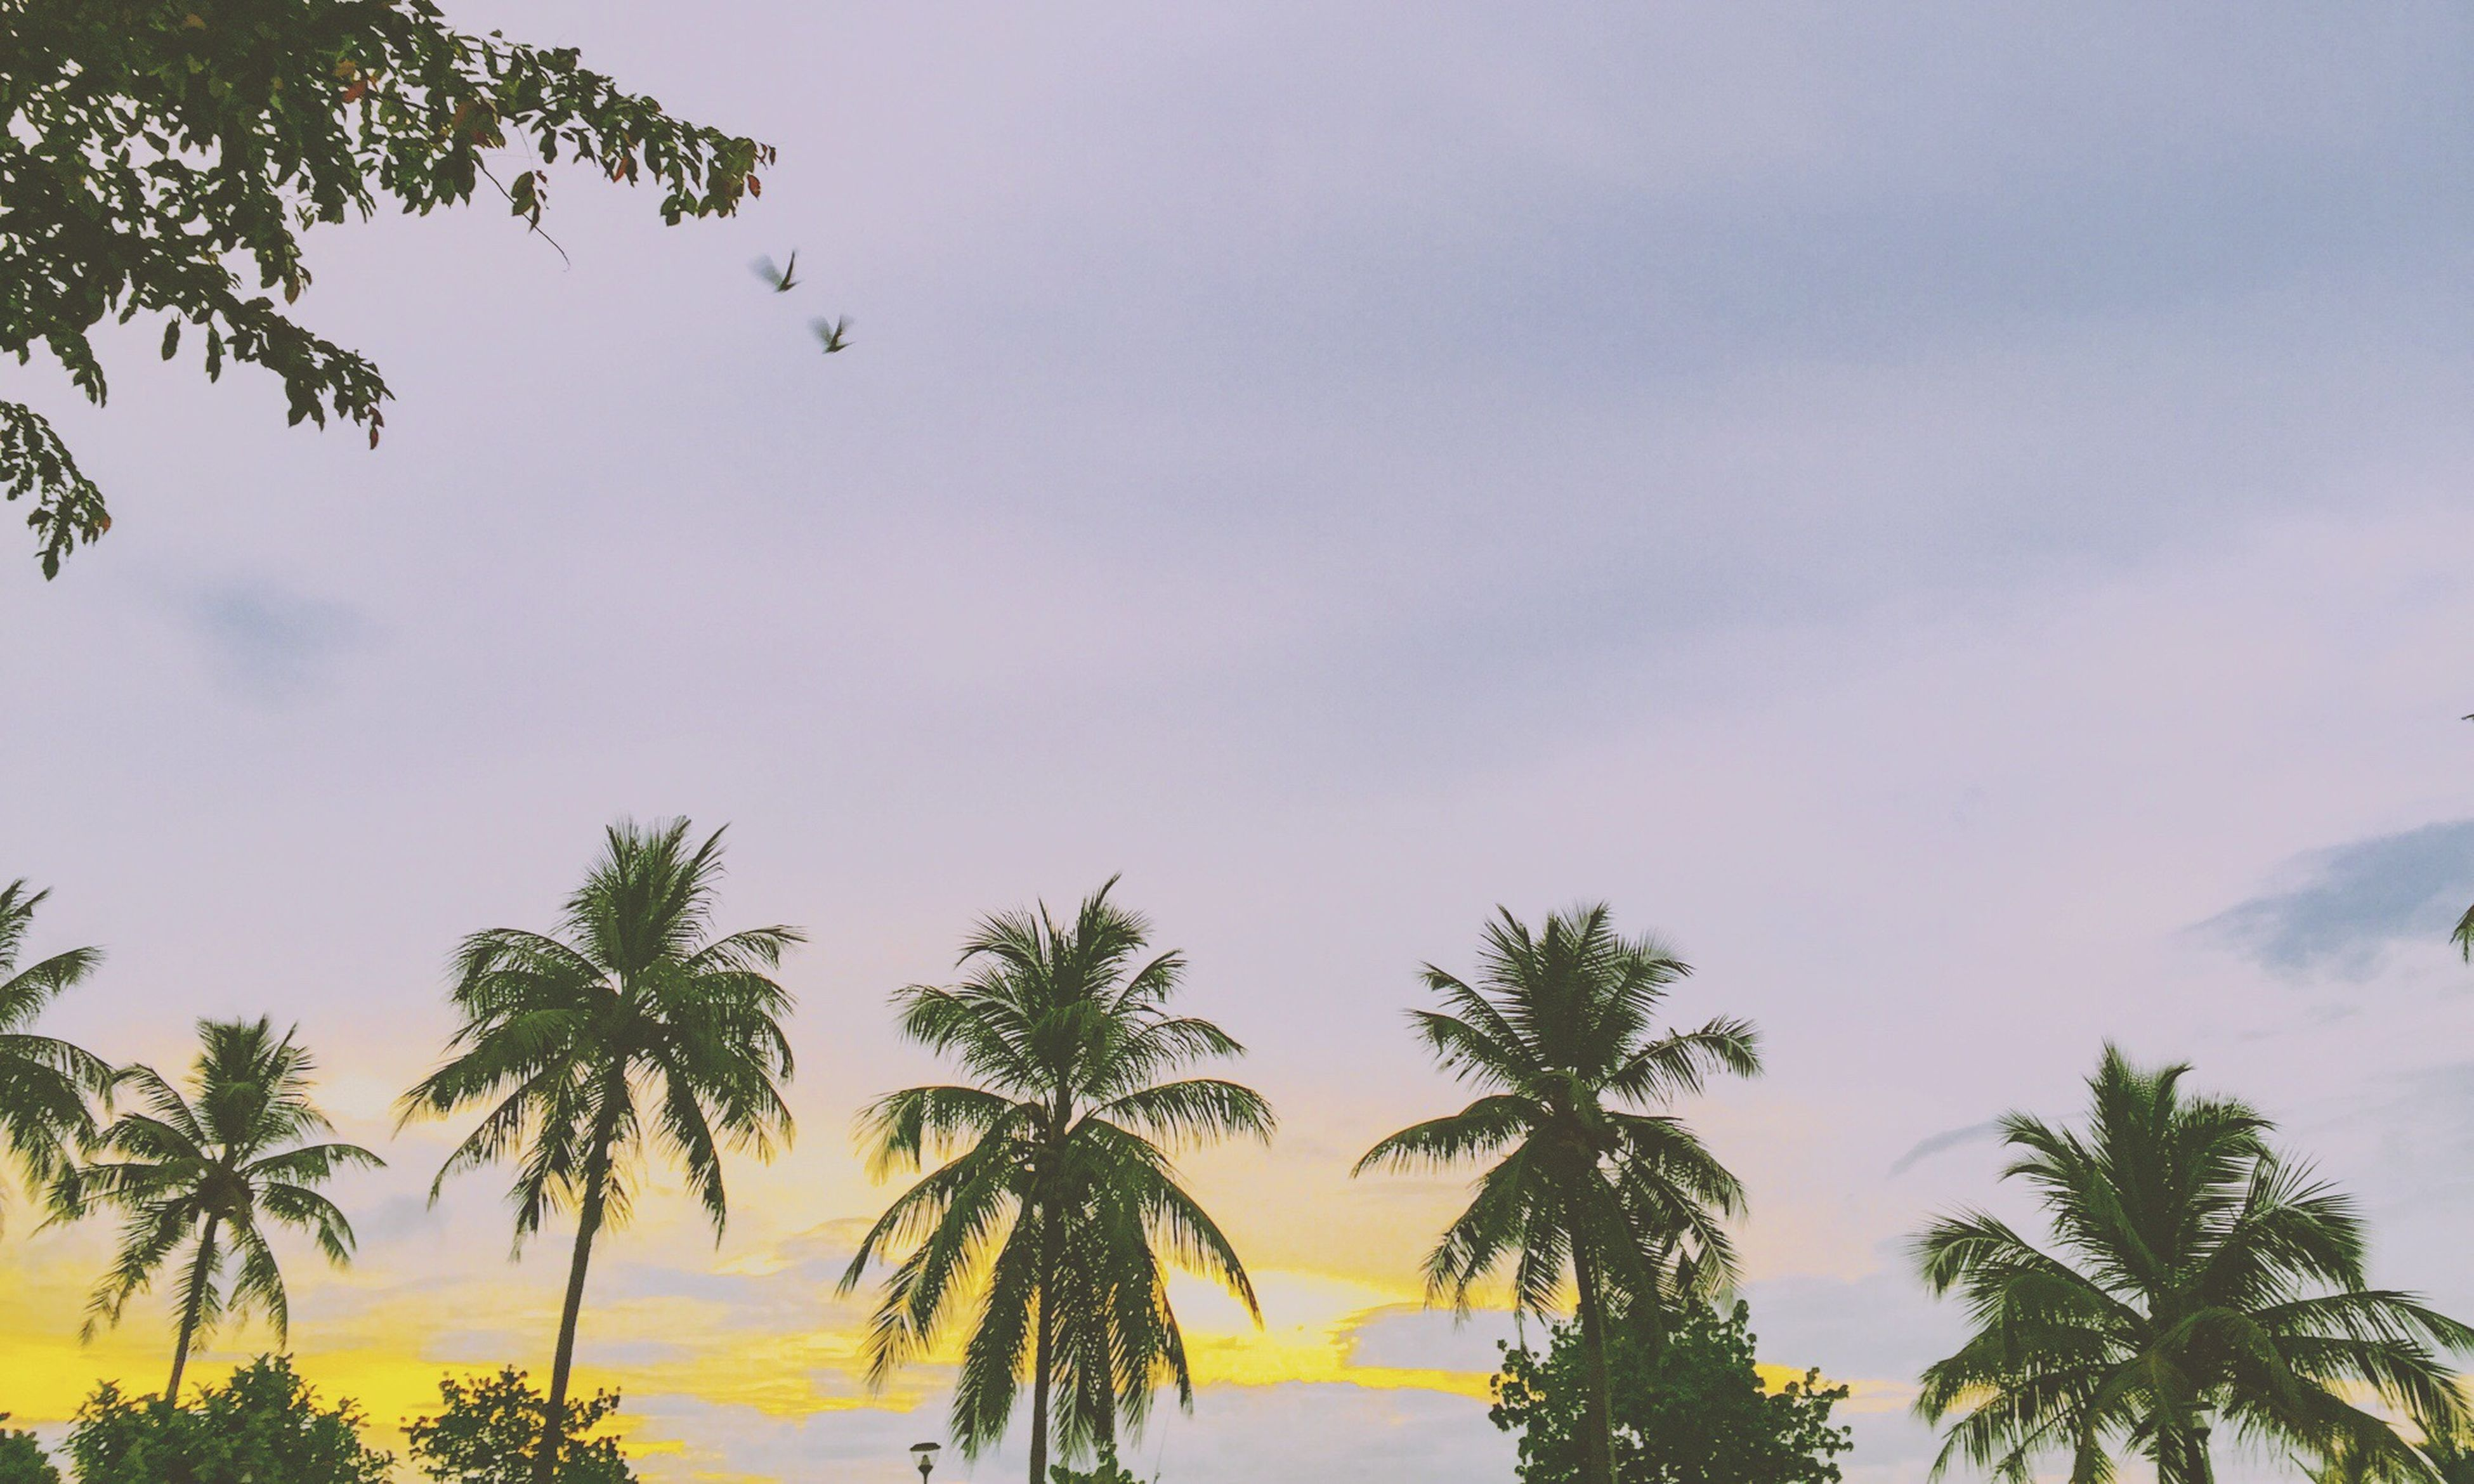 tree, palm tree, sky, low angle view, tranquility, beauty in nature, scenics, sunset, nature, tranquil scene, silhouette, flying, cloud - sky, growth, bird, cloud, idyllic, outdoors, no people, mid-air